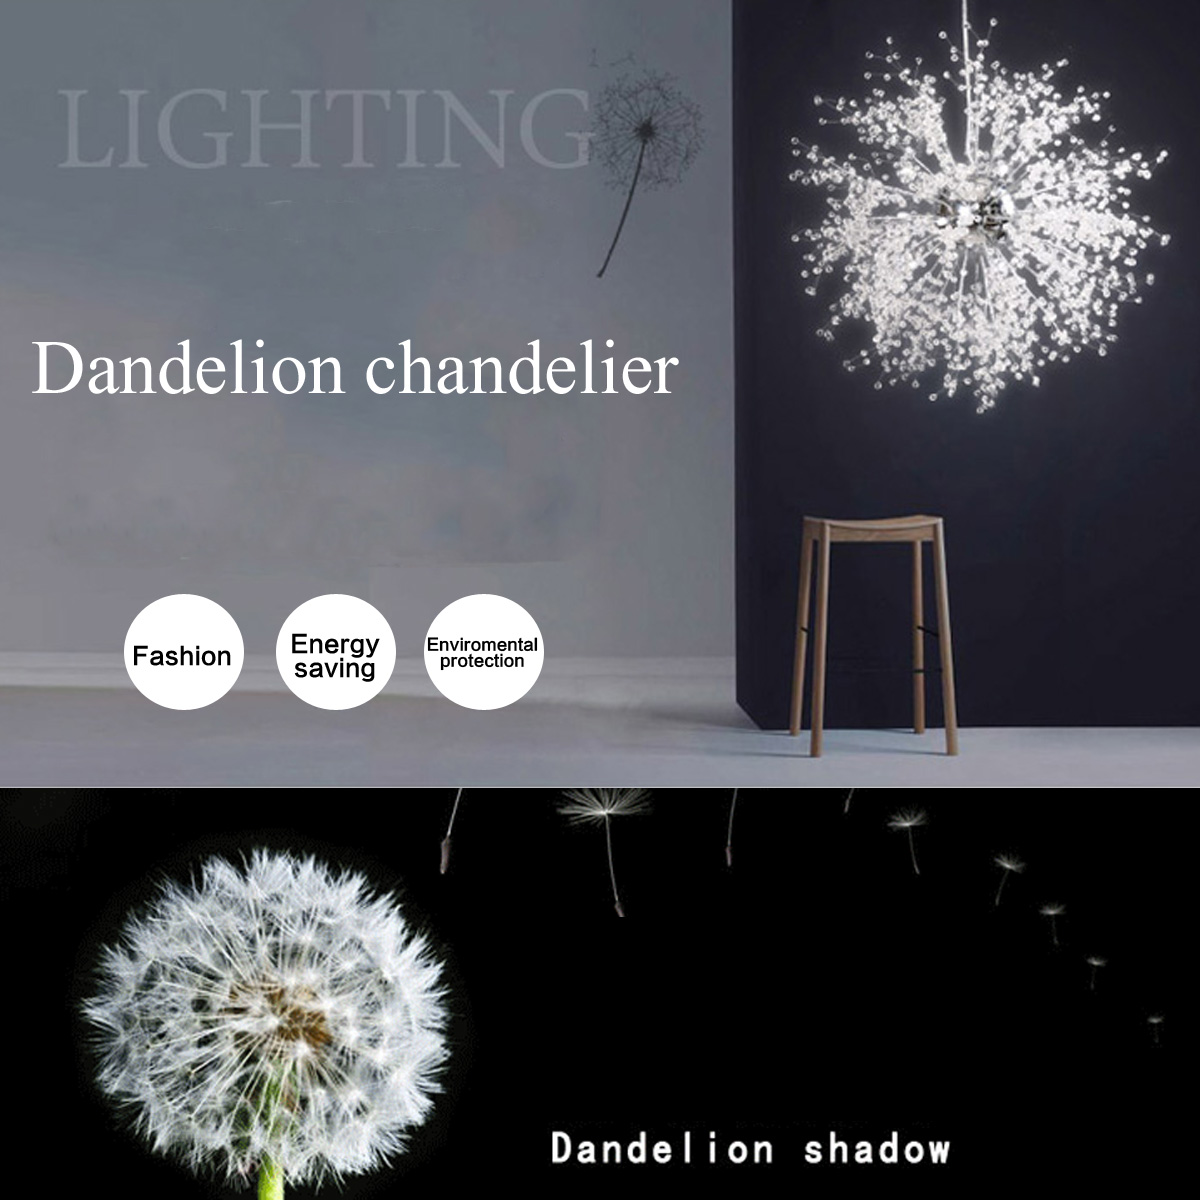 LED Dandelion Chandeliers Lighting for Dining Room Exhibition hall Bedroom Living Room LED White Light Pendant Hanging LampLED Dandelion Chandeliers Lighting for Dining Room Exhibition hall Bedroom Living Room LED White Light Pendant Hanging Lamp